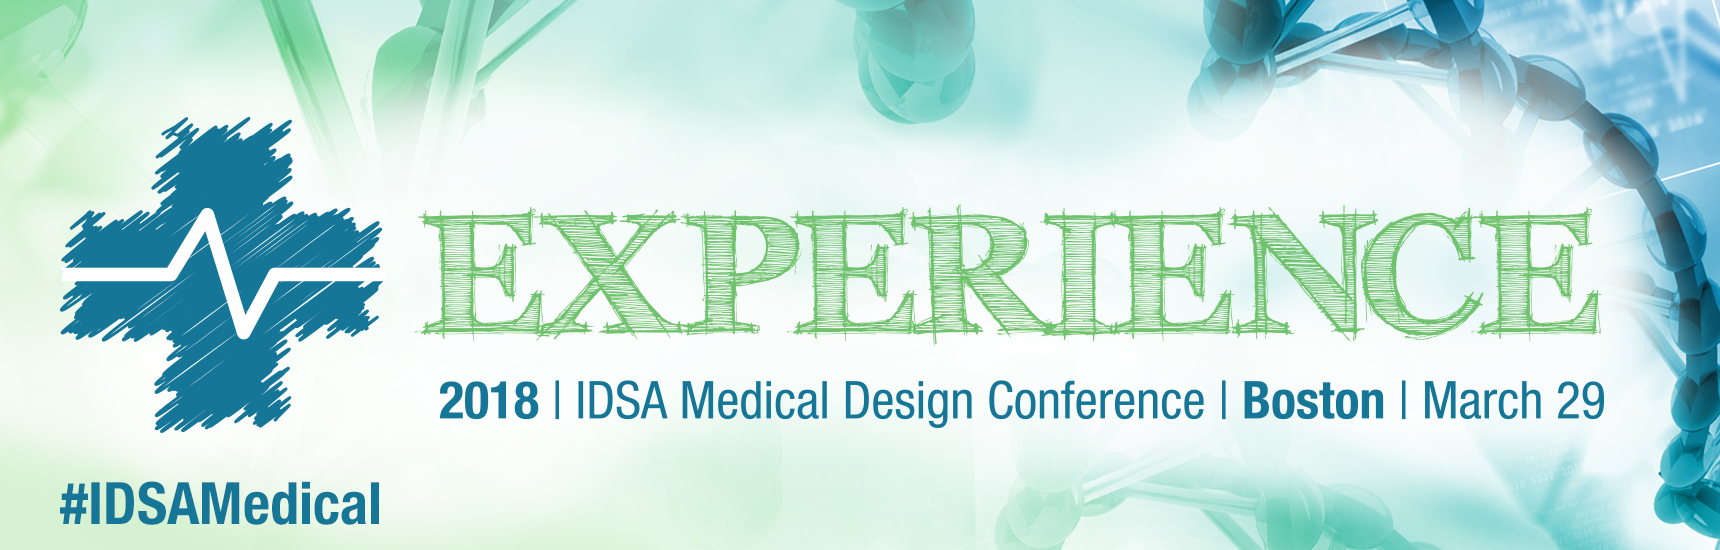 Medical Design Conference 2018: EXPERIENCE | Industrial